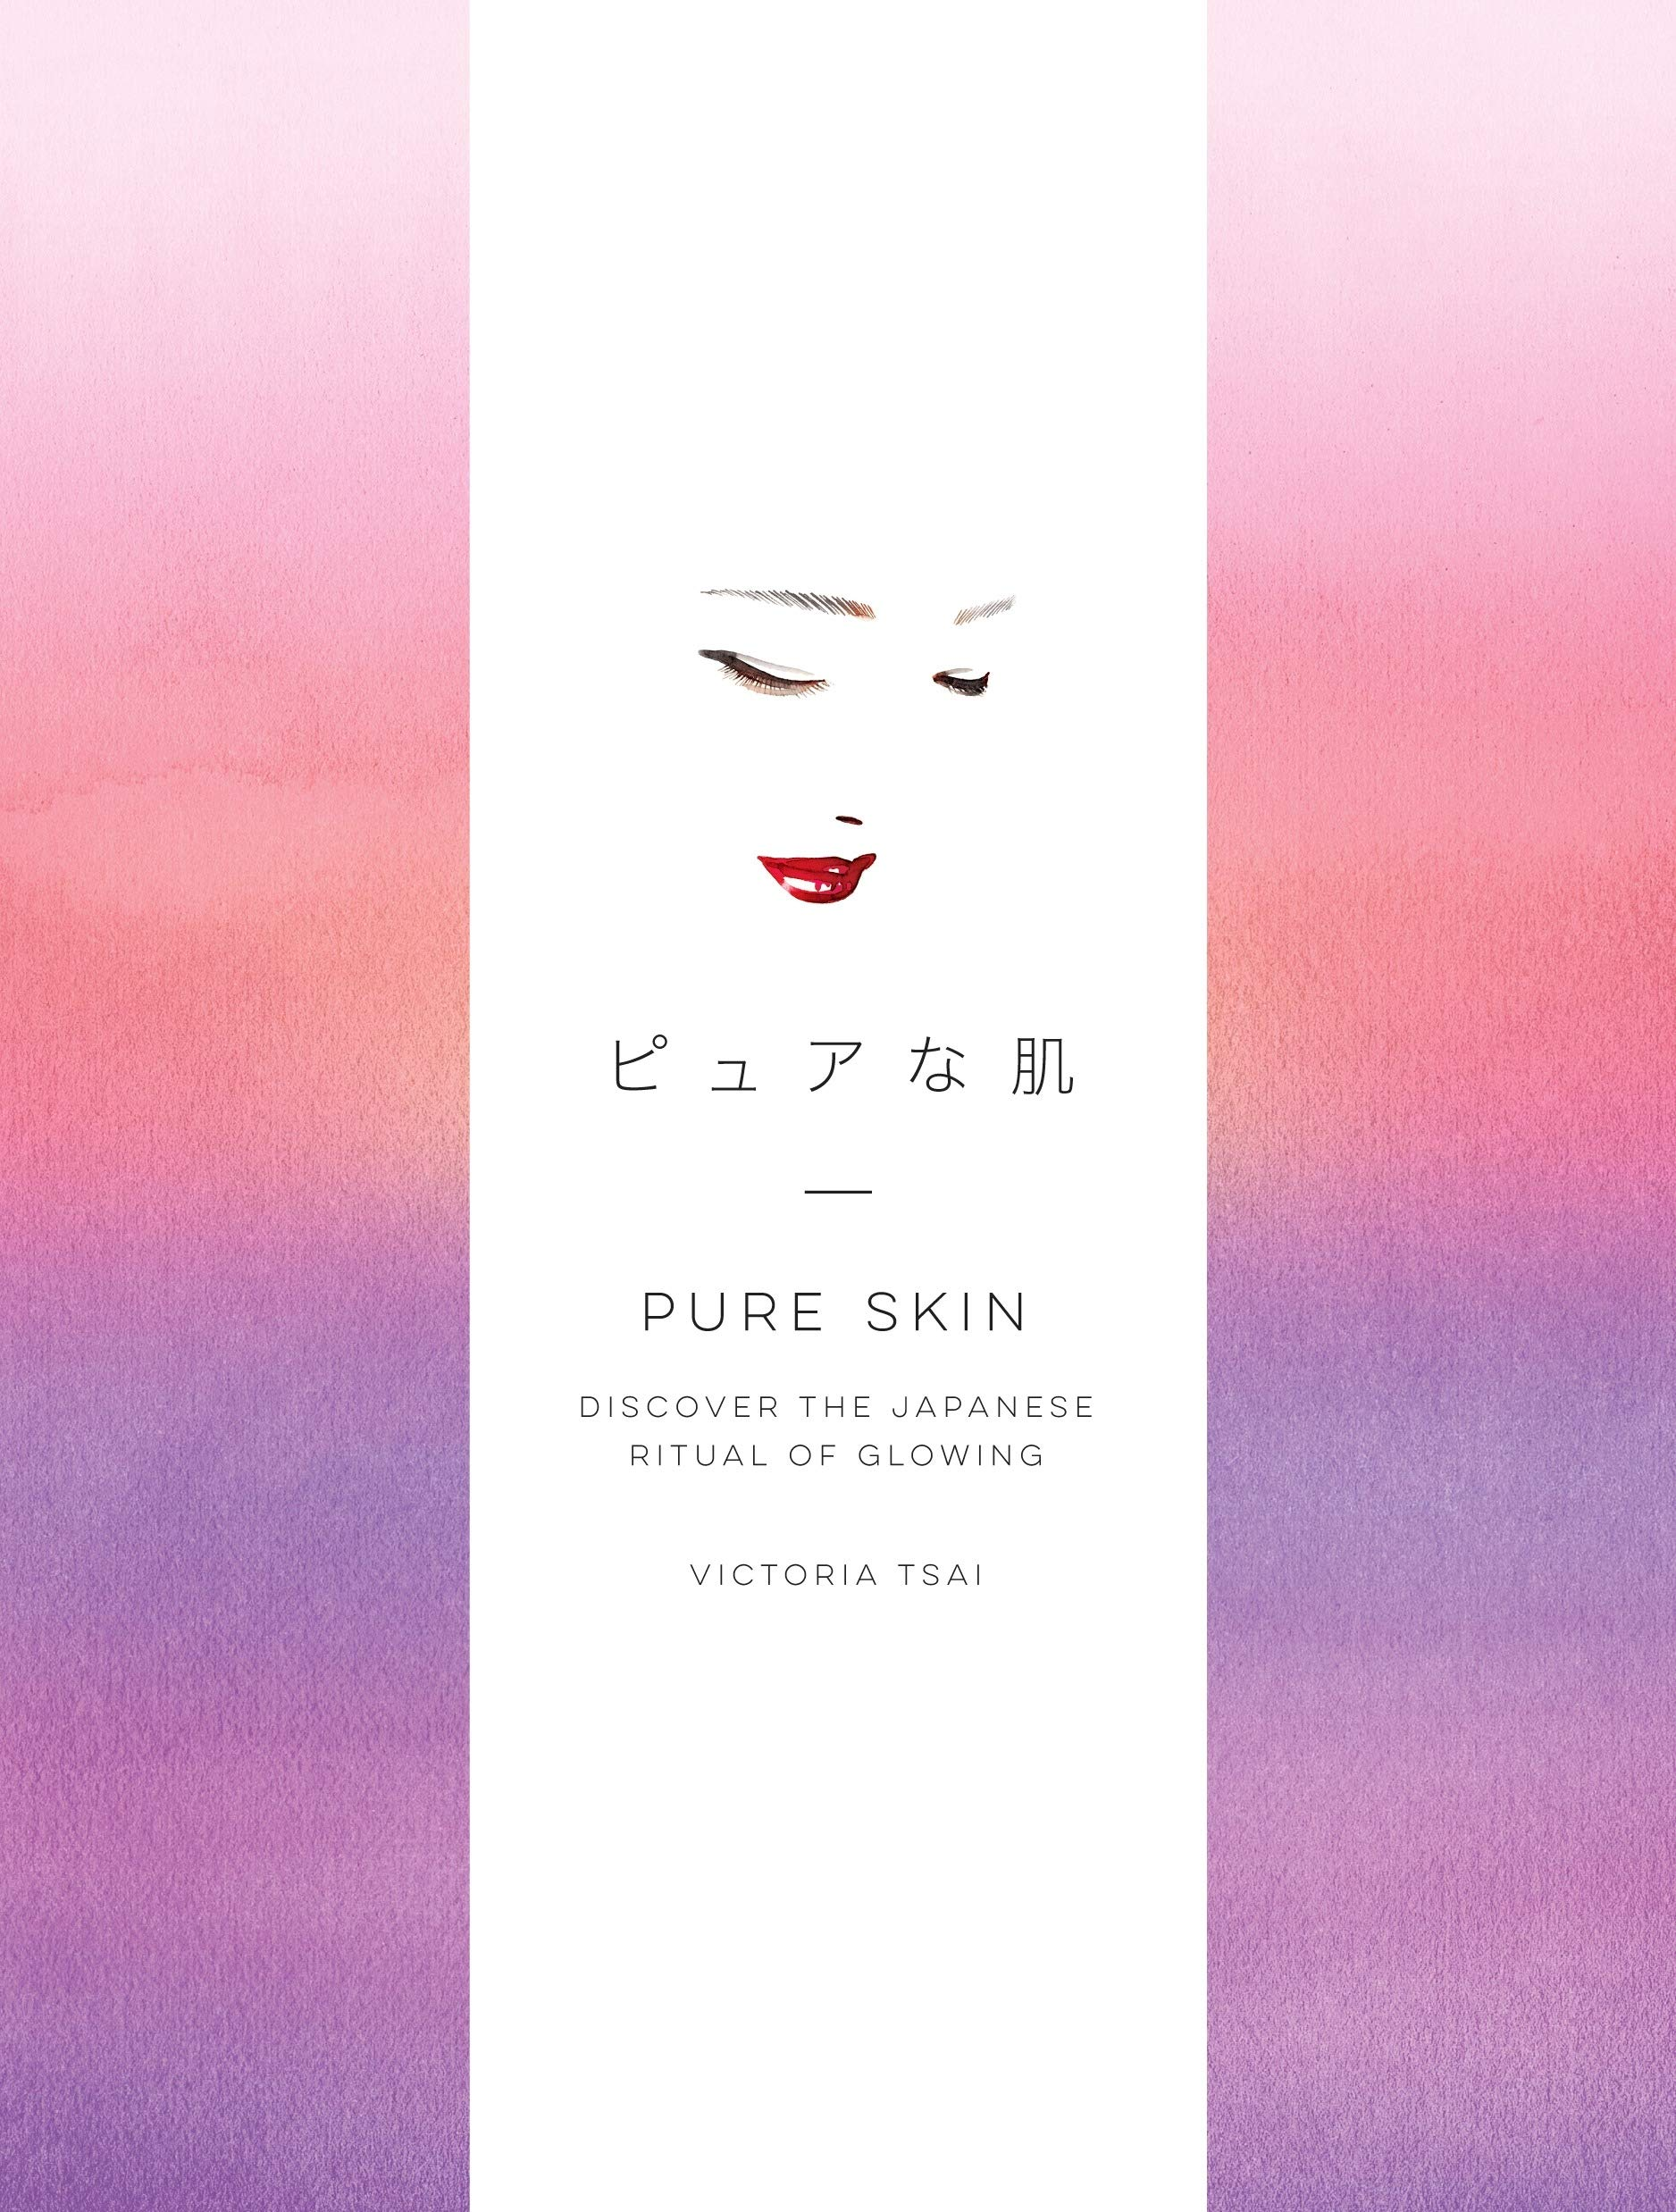 Image OfPure Skin: Discover The Japanese Ritual Of Glowing